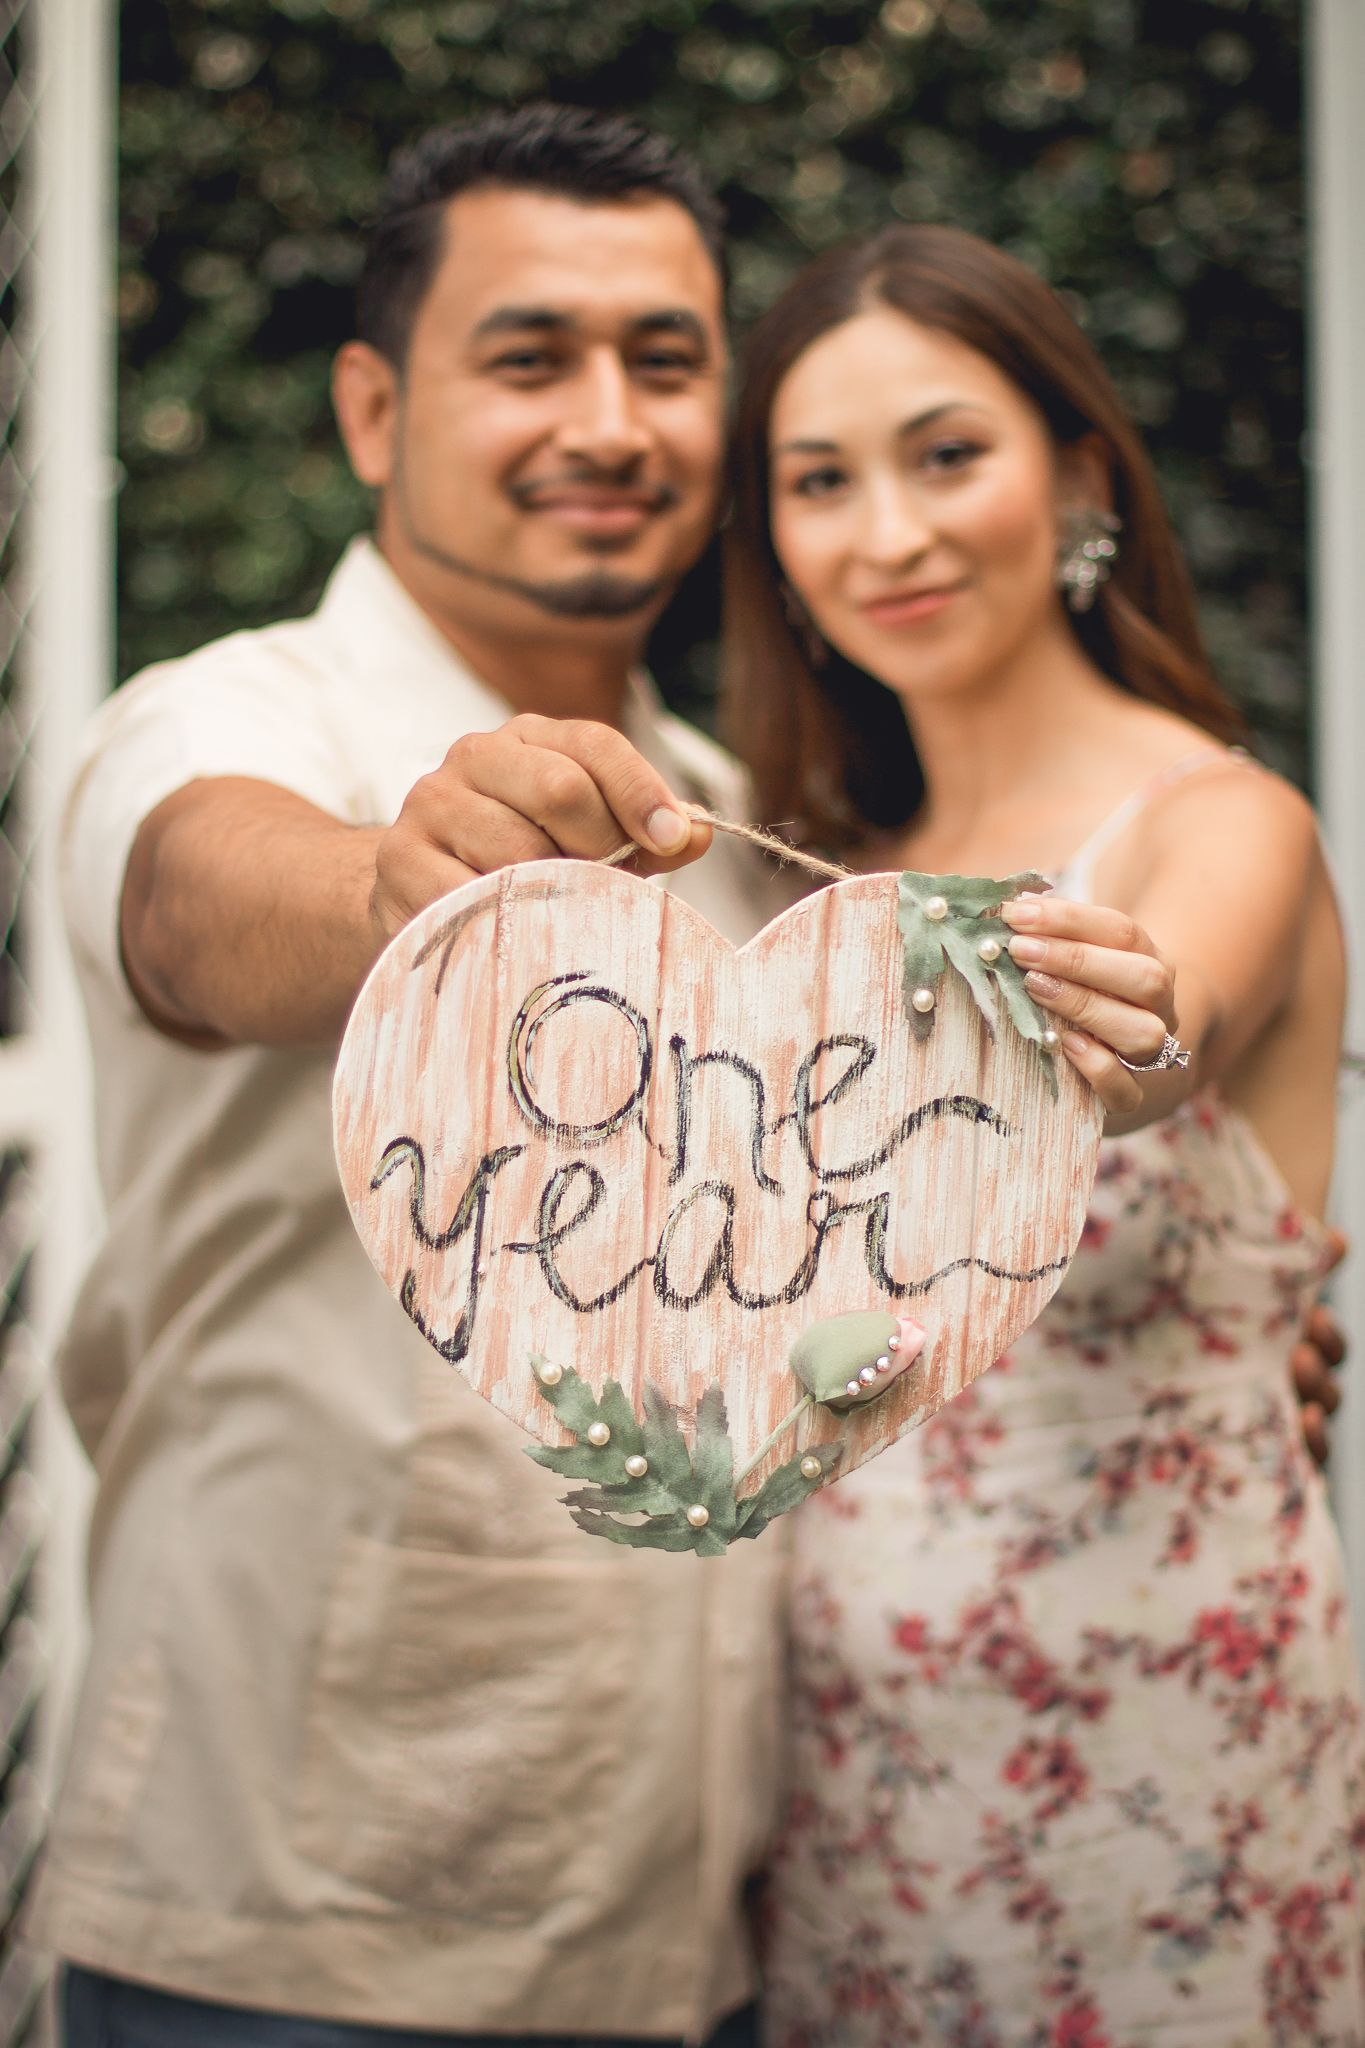 One Year Wedding Anniversary Photo Shoot #cutesign # ...